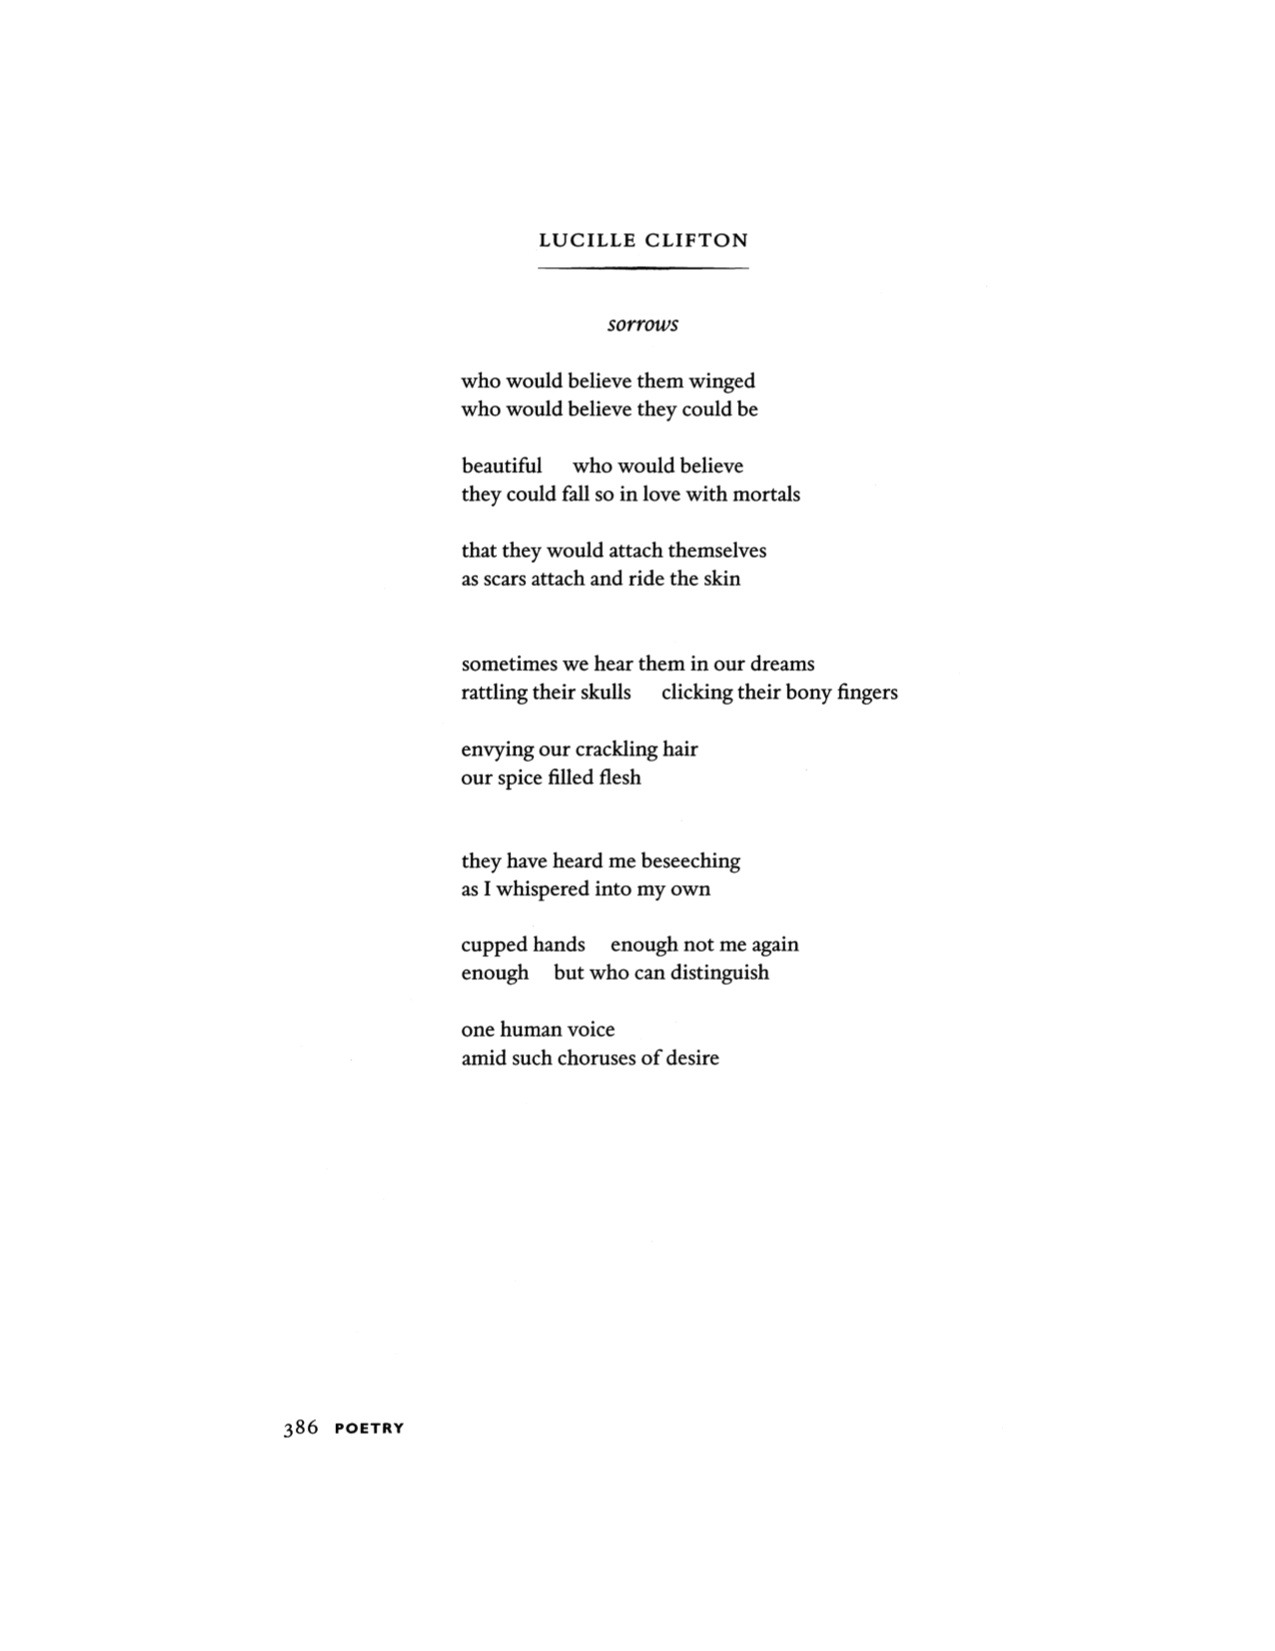 clavicola:  Lucille Clifton (June 27, 1936 – February 13, 2010), Poetry, September 2007